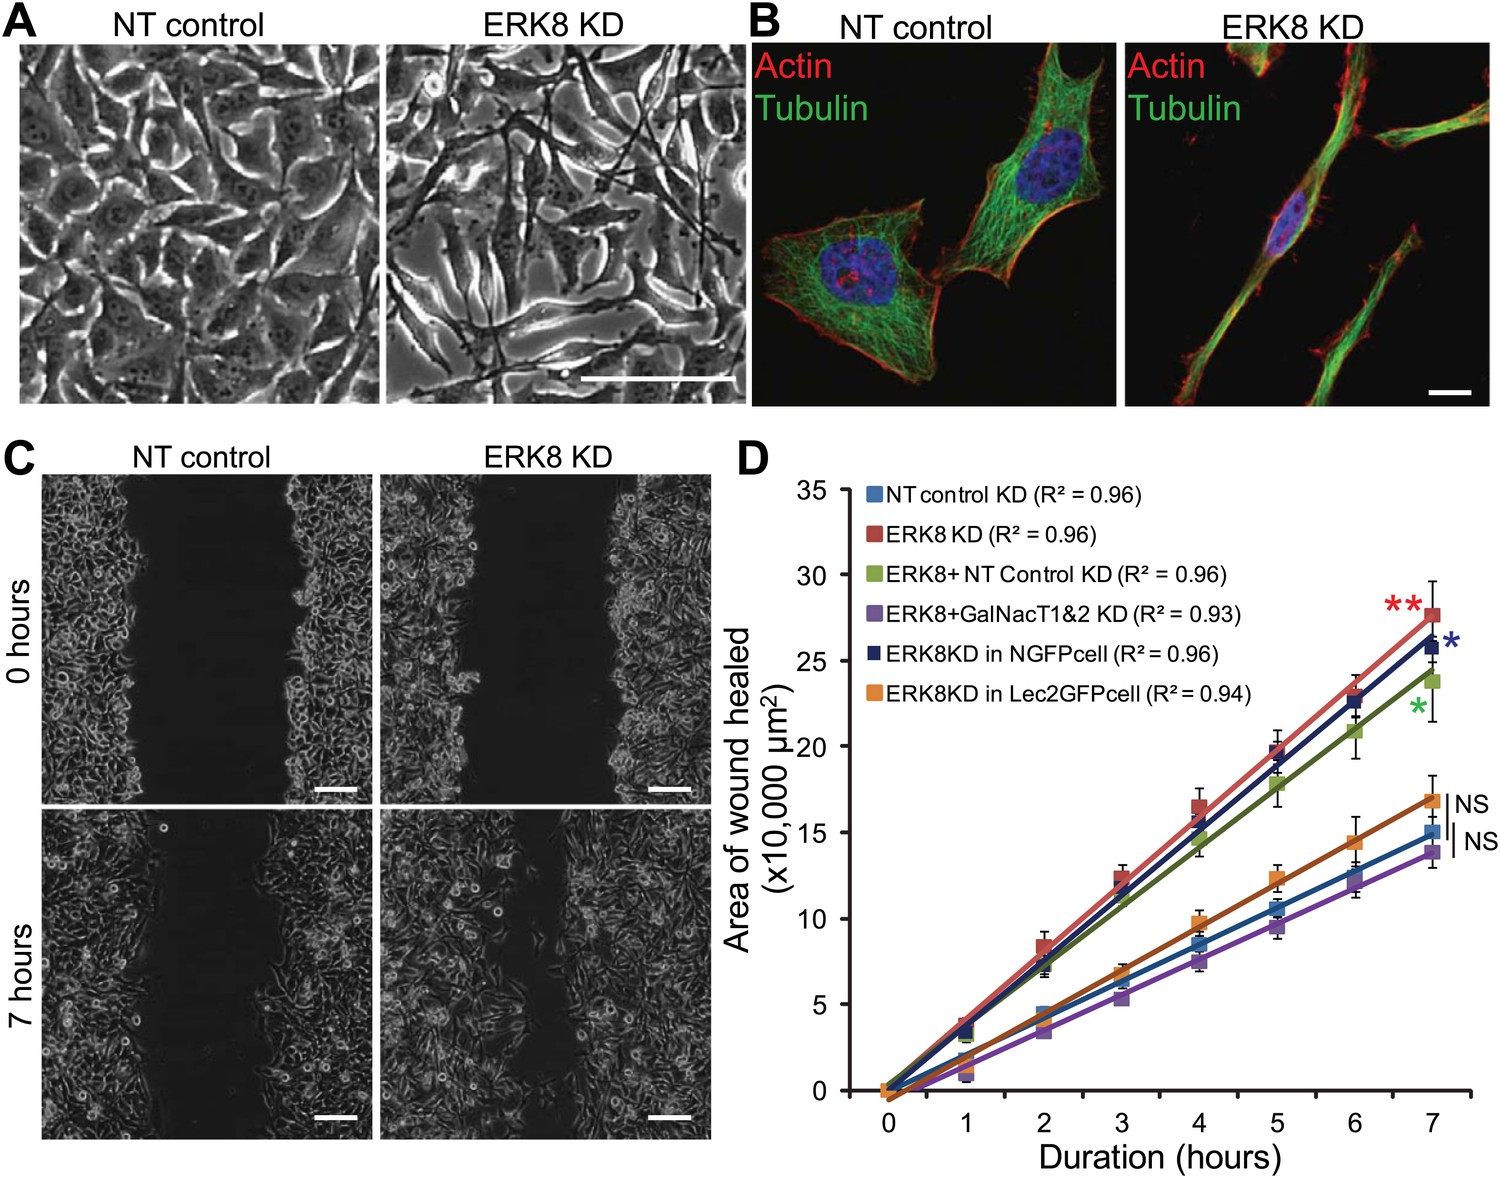 ERK8 is a negative regulator of O-GalNAc glycosylation and cell